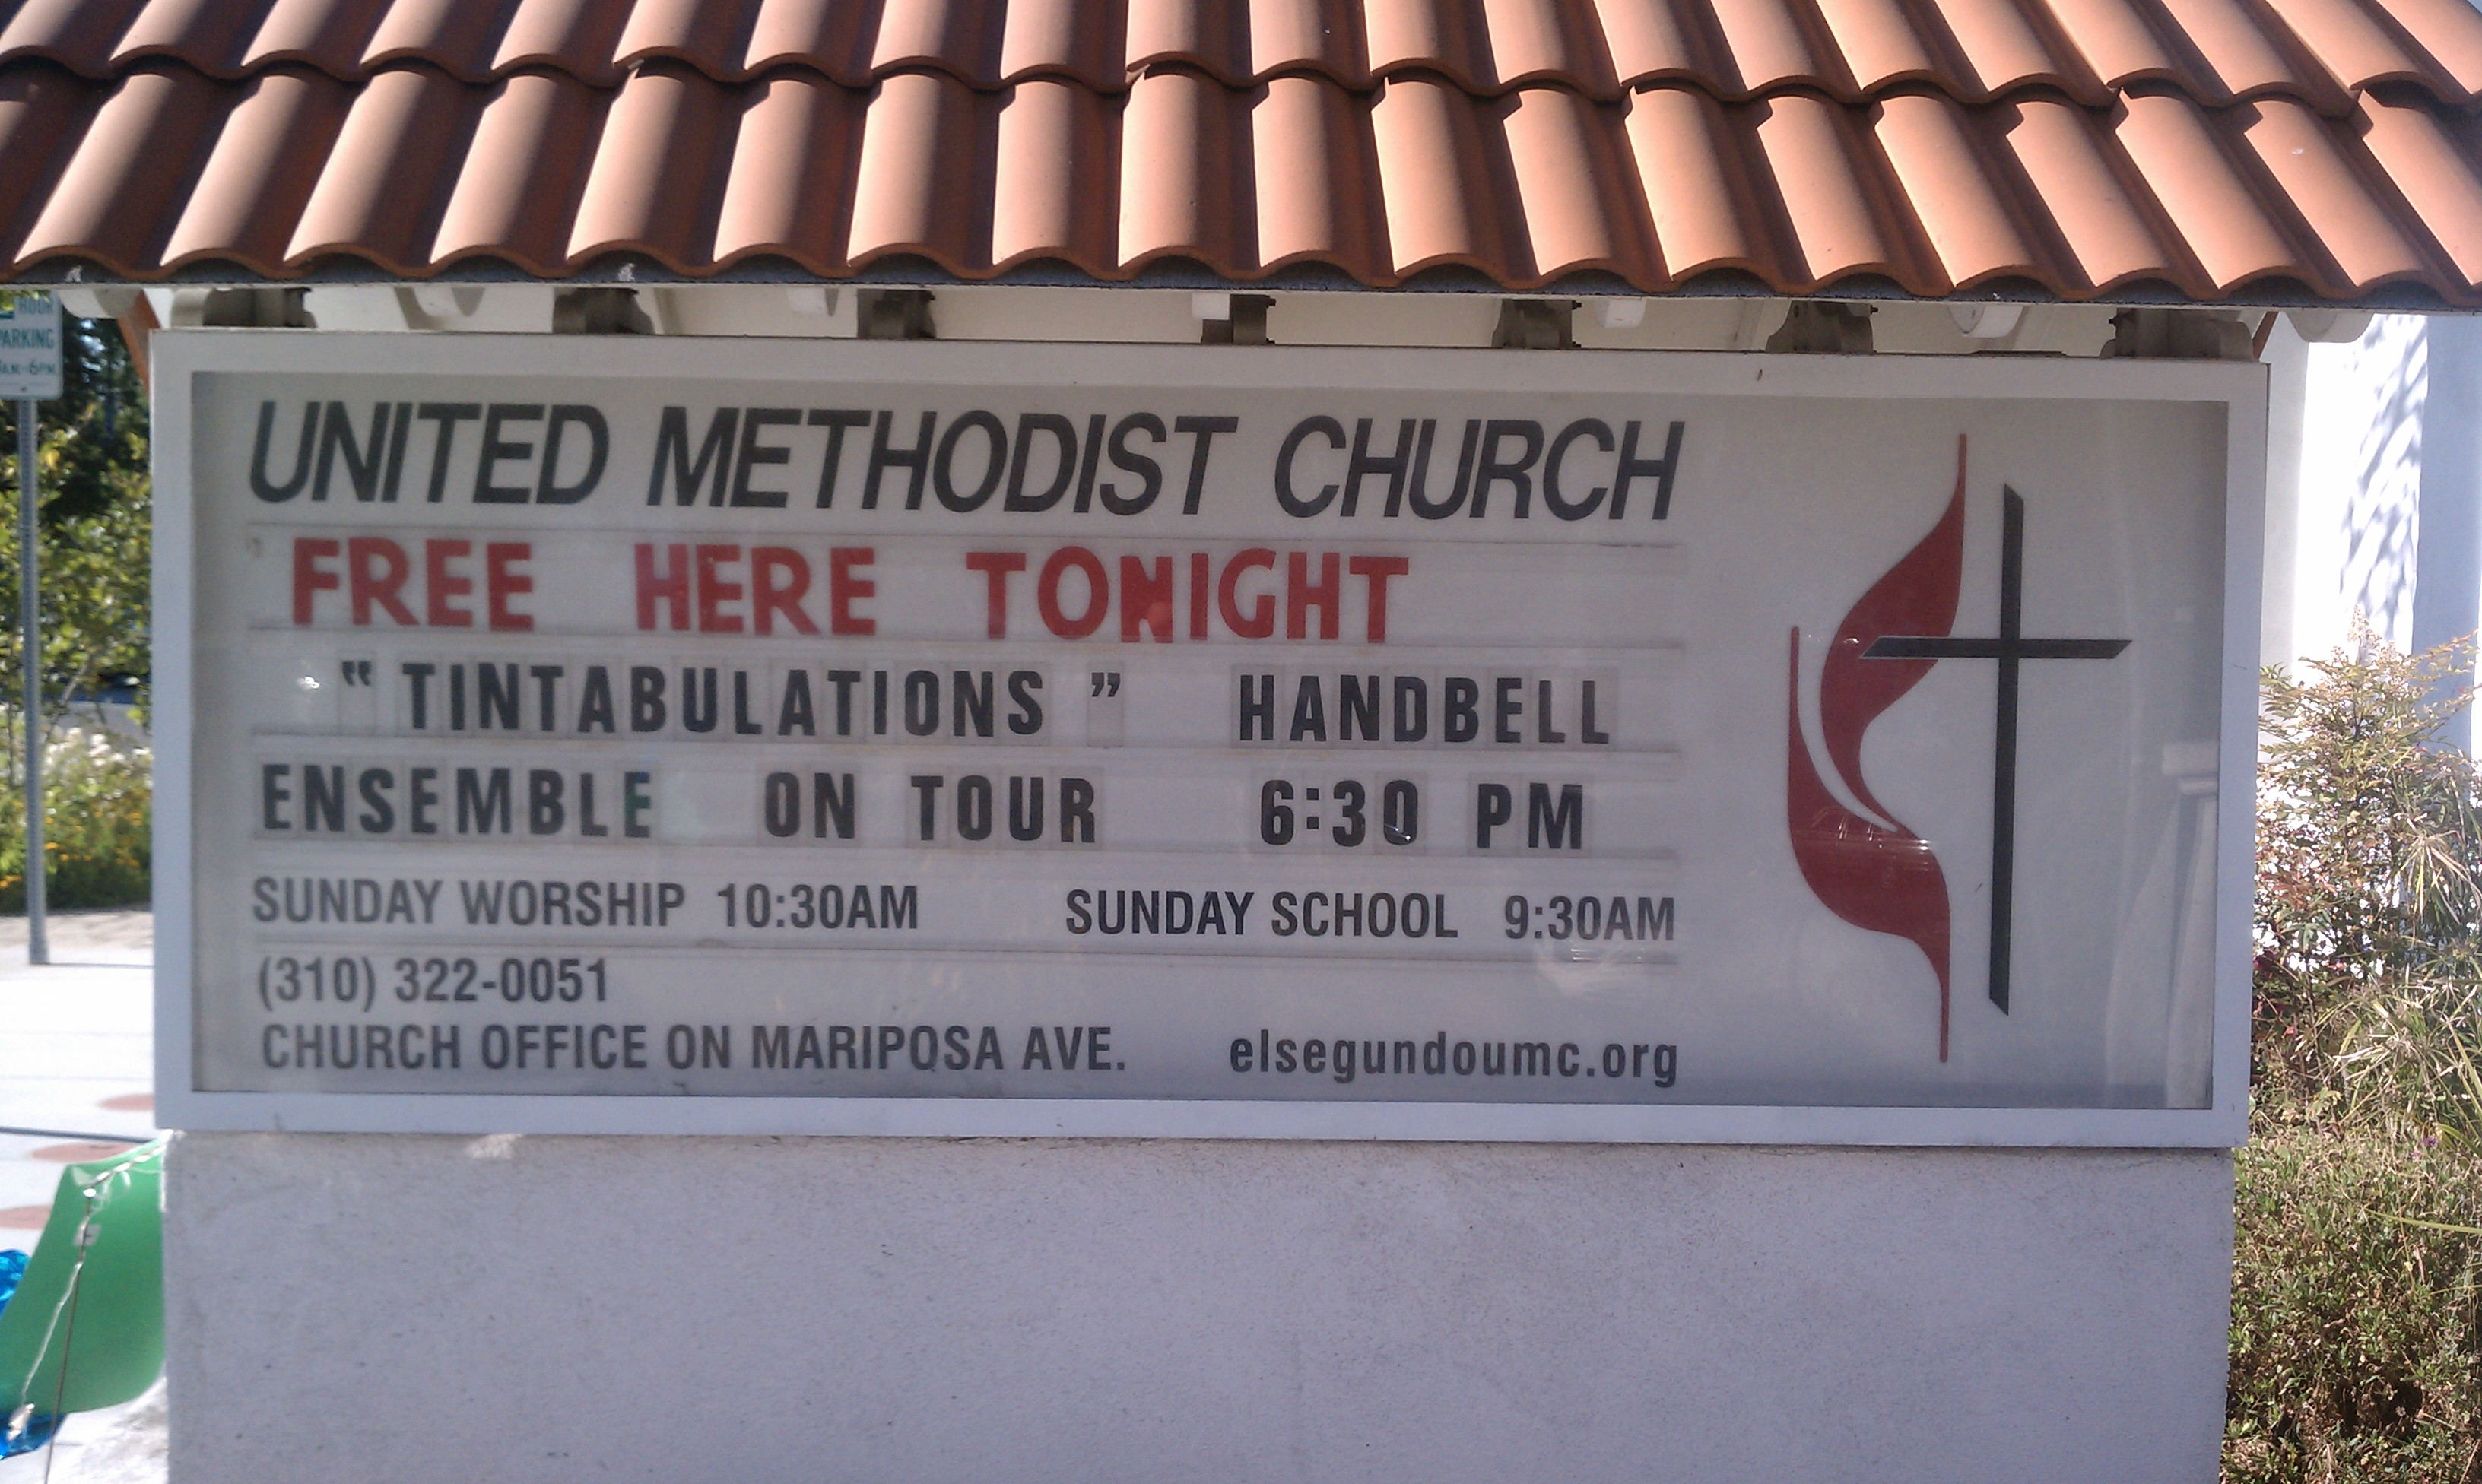 United Methodist sign